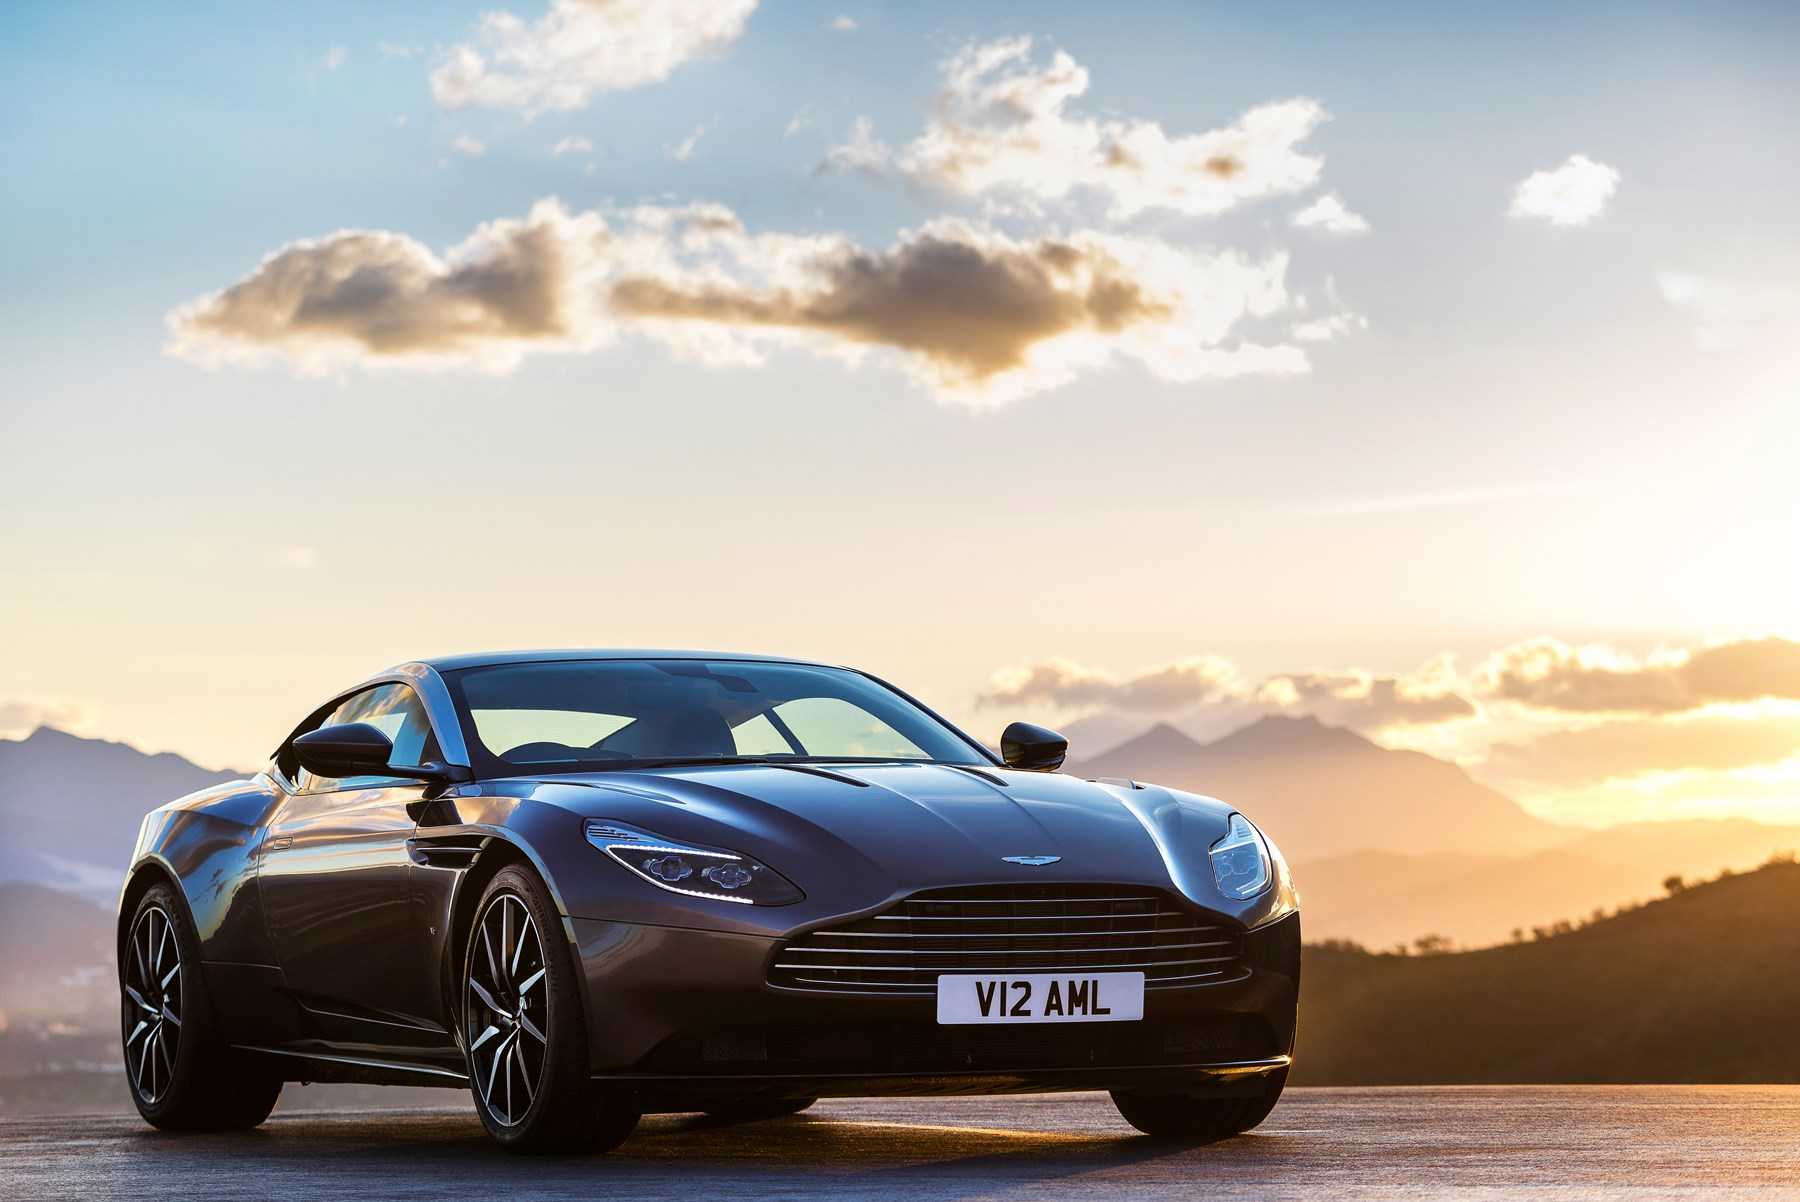 160622aston_martin_db11_car_design_award_2016.jpg